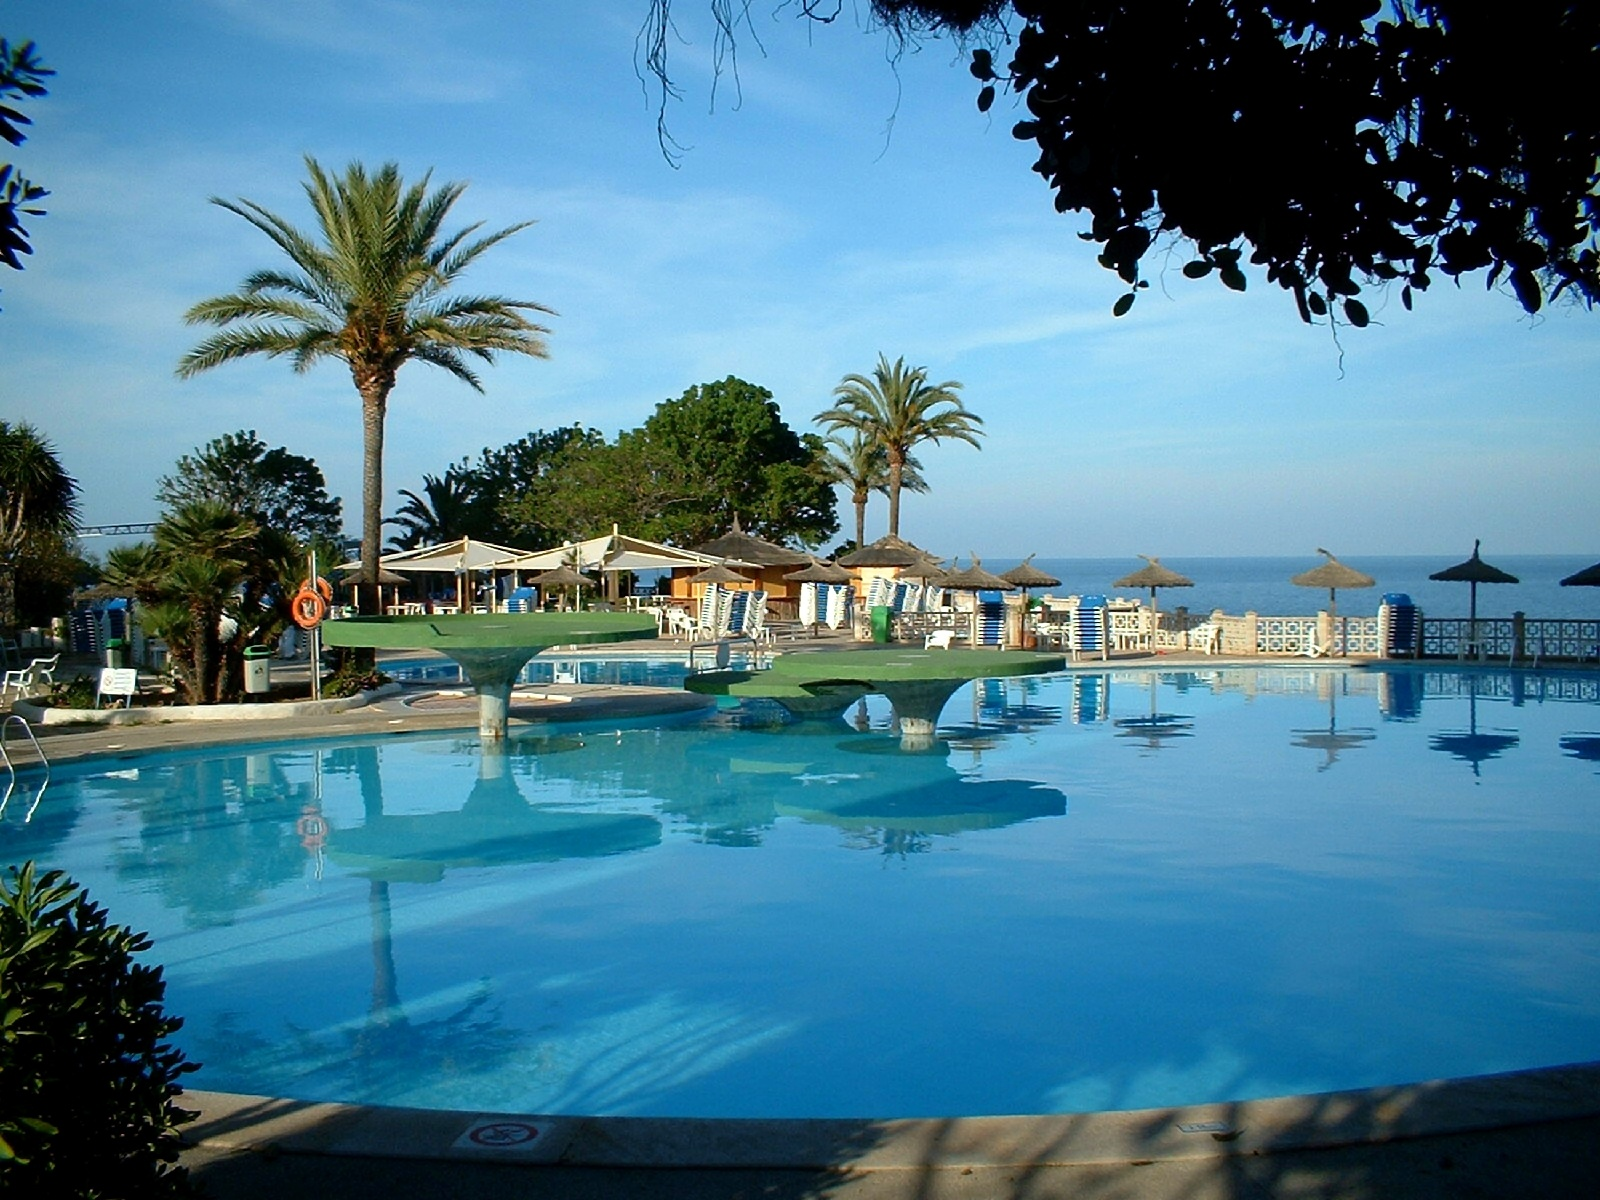 Spanien urlaub pool hintergrundbilder spanien urlaub for Pool time pools